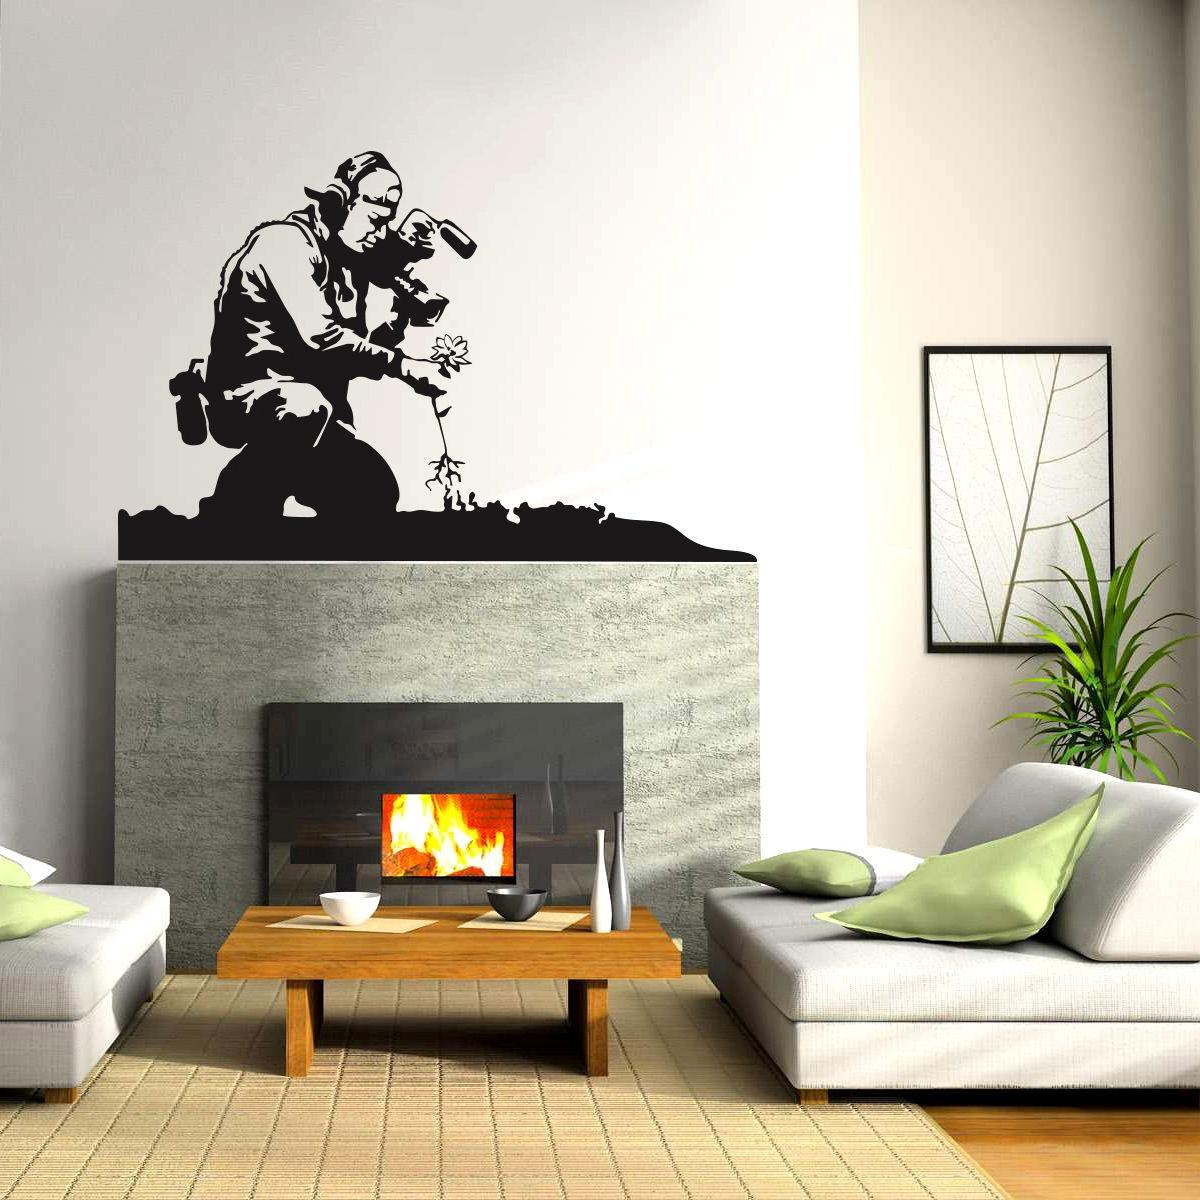 Online Get Cheap Street Art Wall Decal  Aliexpress | Alibaba Group Regarding Street Wall Art Decals (Image 12 of 20)